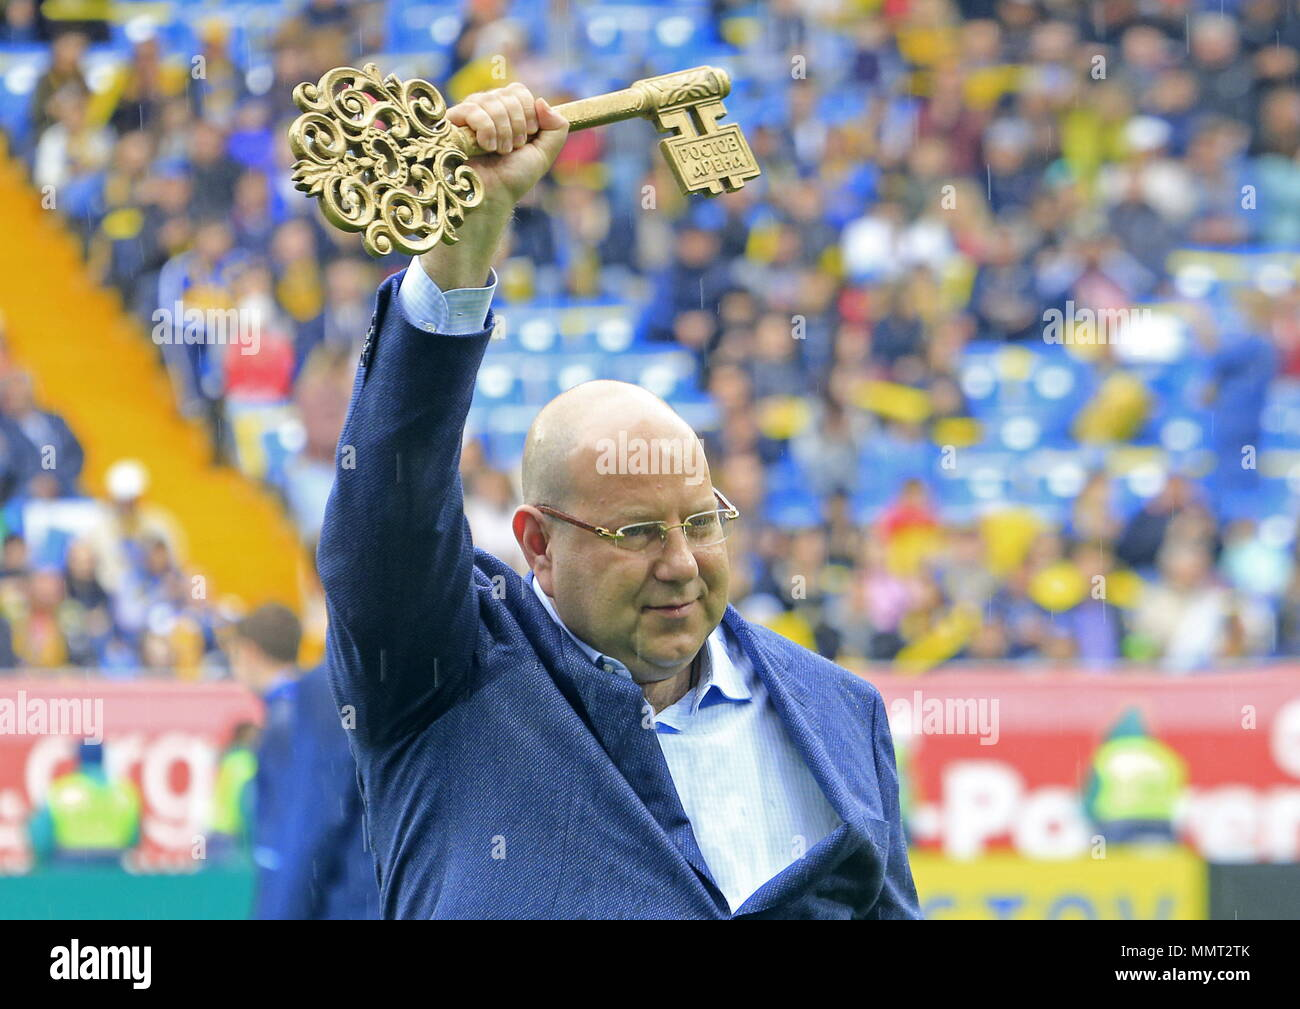 Rostov On Don, Russia. 13th May, 2018. ROSTOV-ON-DON, RUSSIA - MAY 13, 2018: FC Rostov President Artashes Arutyunyants holds the symbolic key at a ceremony to open Rostov Arena Stadium ahead of a 2017/2018 Russian Football Premier League Round 30 match between FC Rostov and FC Ural, the third trial for the venue to host ahead of the 2018 FIFA World Cup. Valery Matytsin/TASS Credit: ITAR-TASS News Agency/Alamy Live News Stock Photo